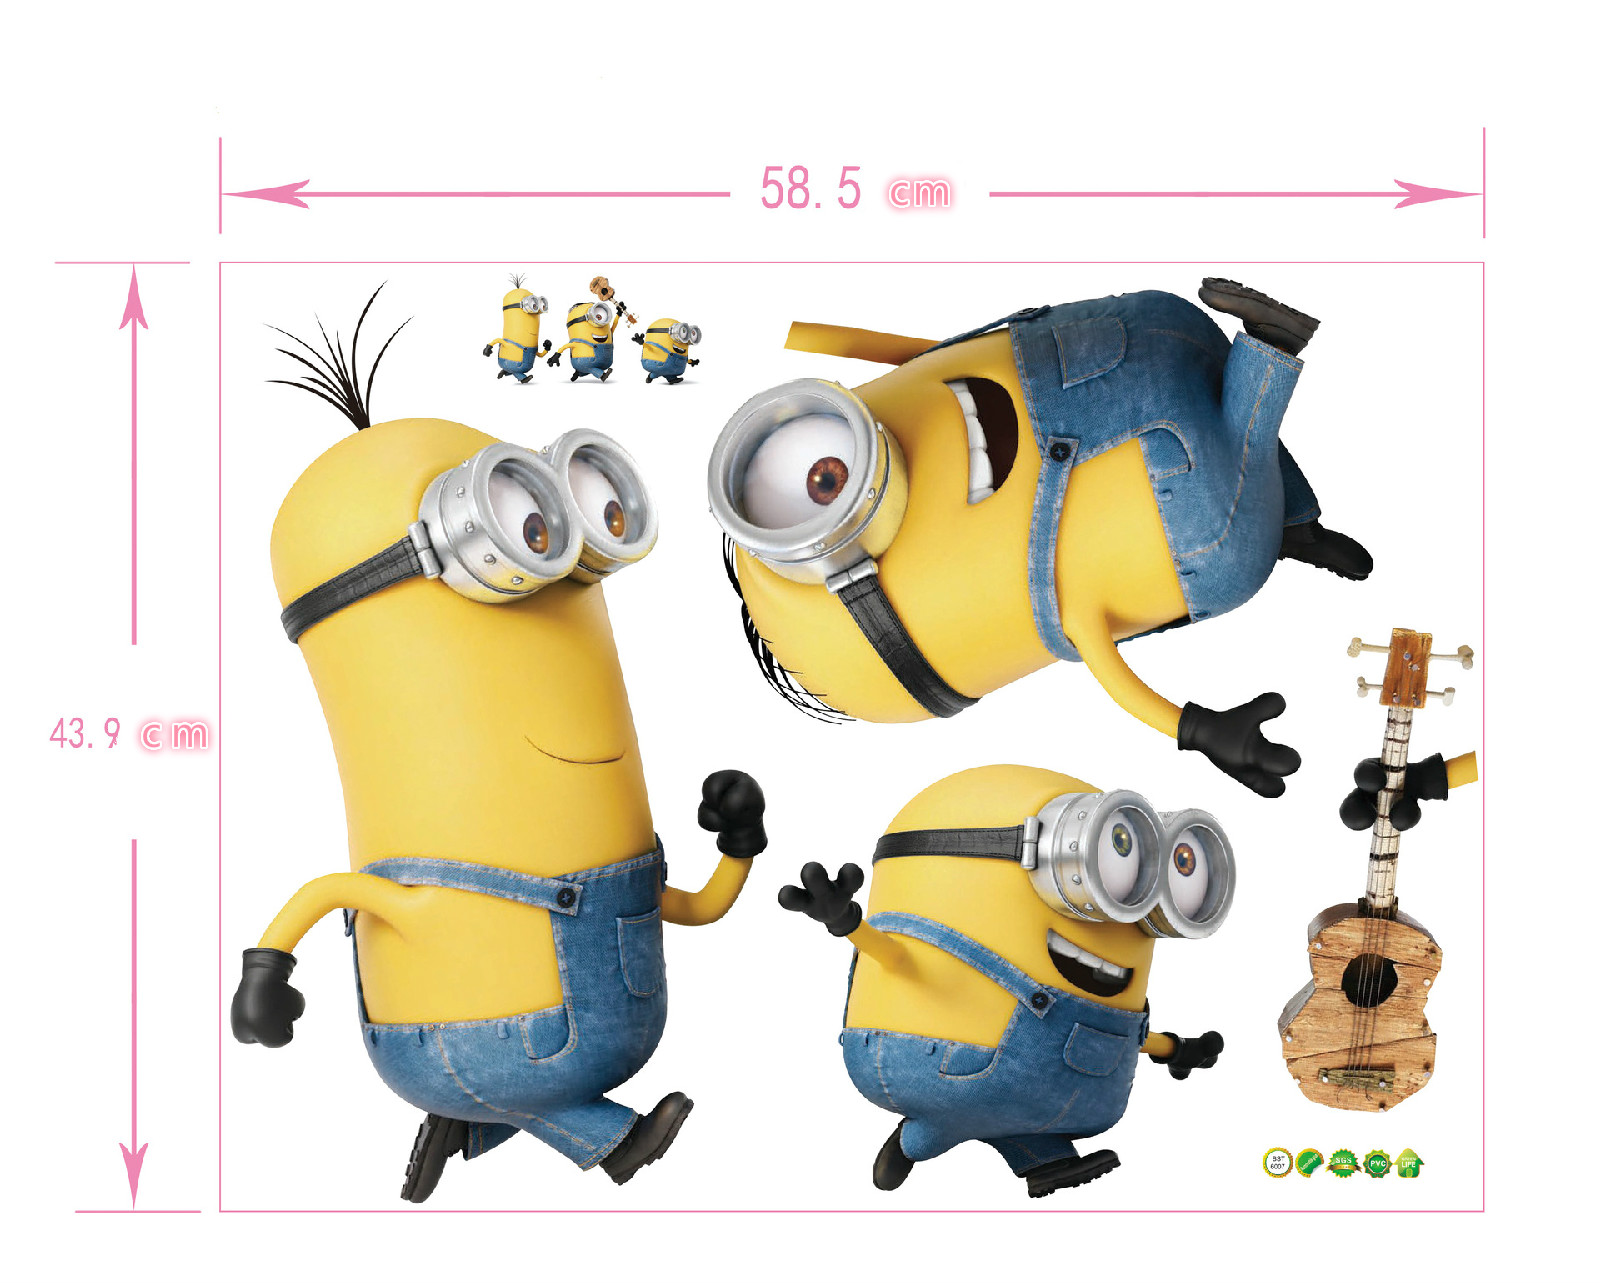 7 Knds 3D Despicable Me 2 Minions Wall Stickers Floor Stickers Children's Room Wall Stickers Creative 3D Minions Decals For Kids